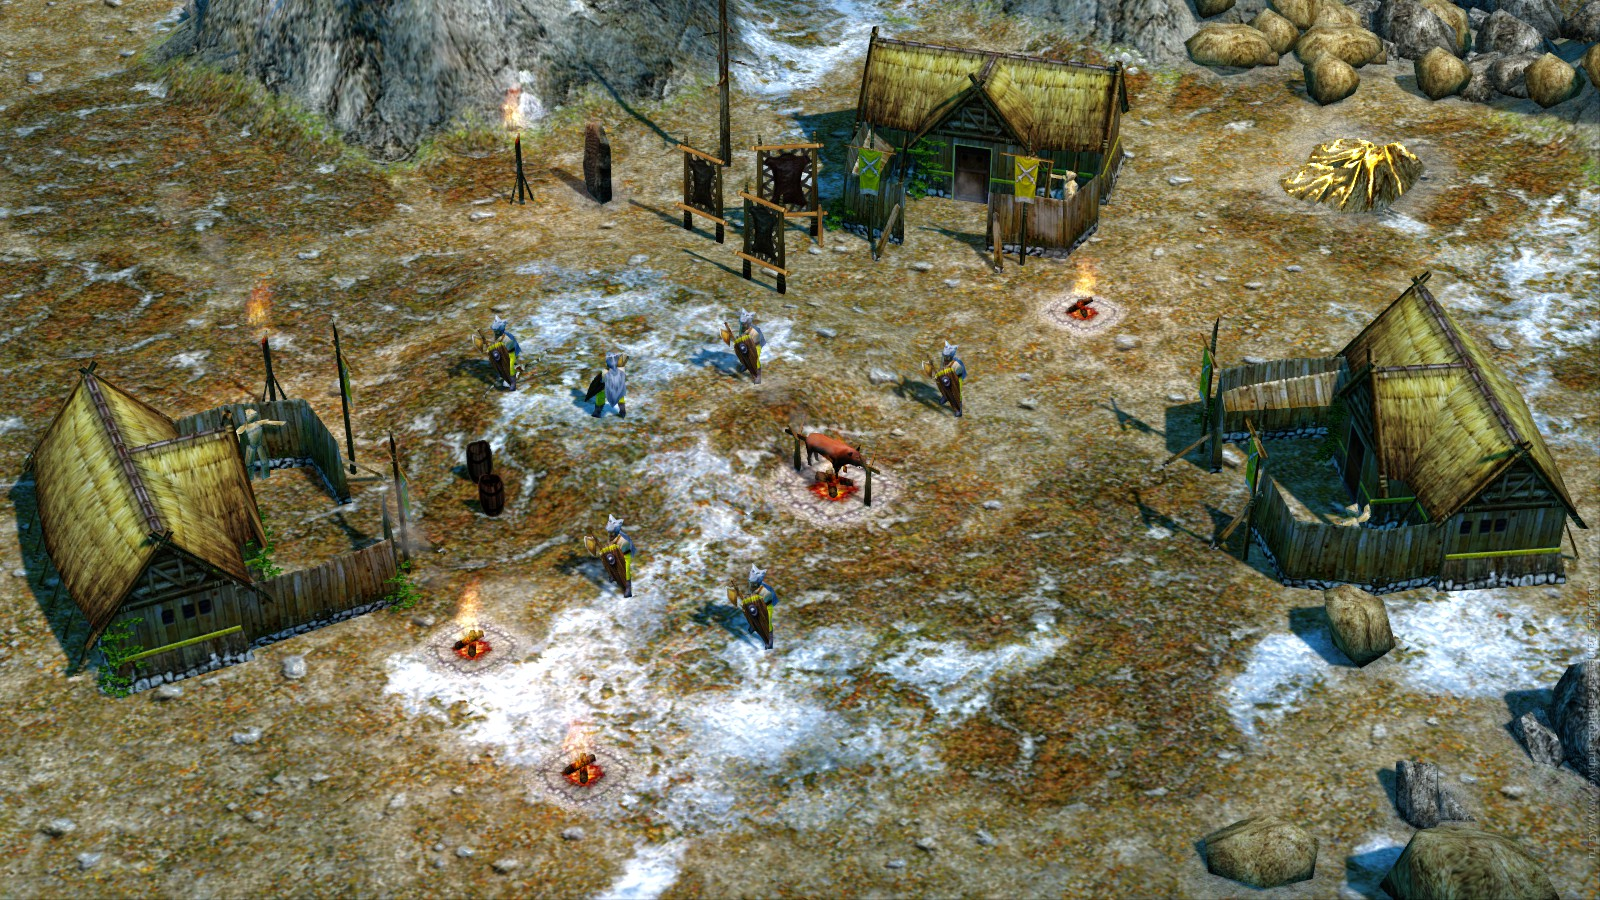 Age of Mythology: Extended Edition [v.1.5.2325] (2014/РС/Русский) | RePack by XLASER